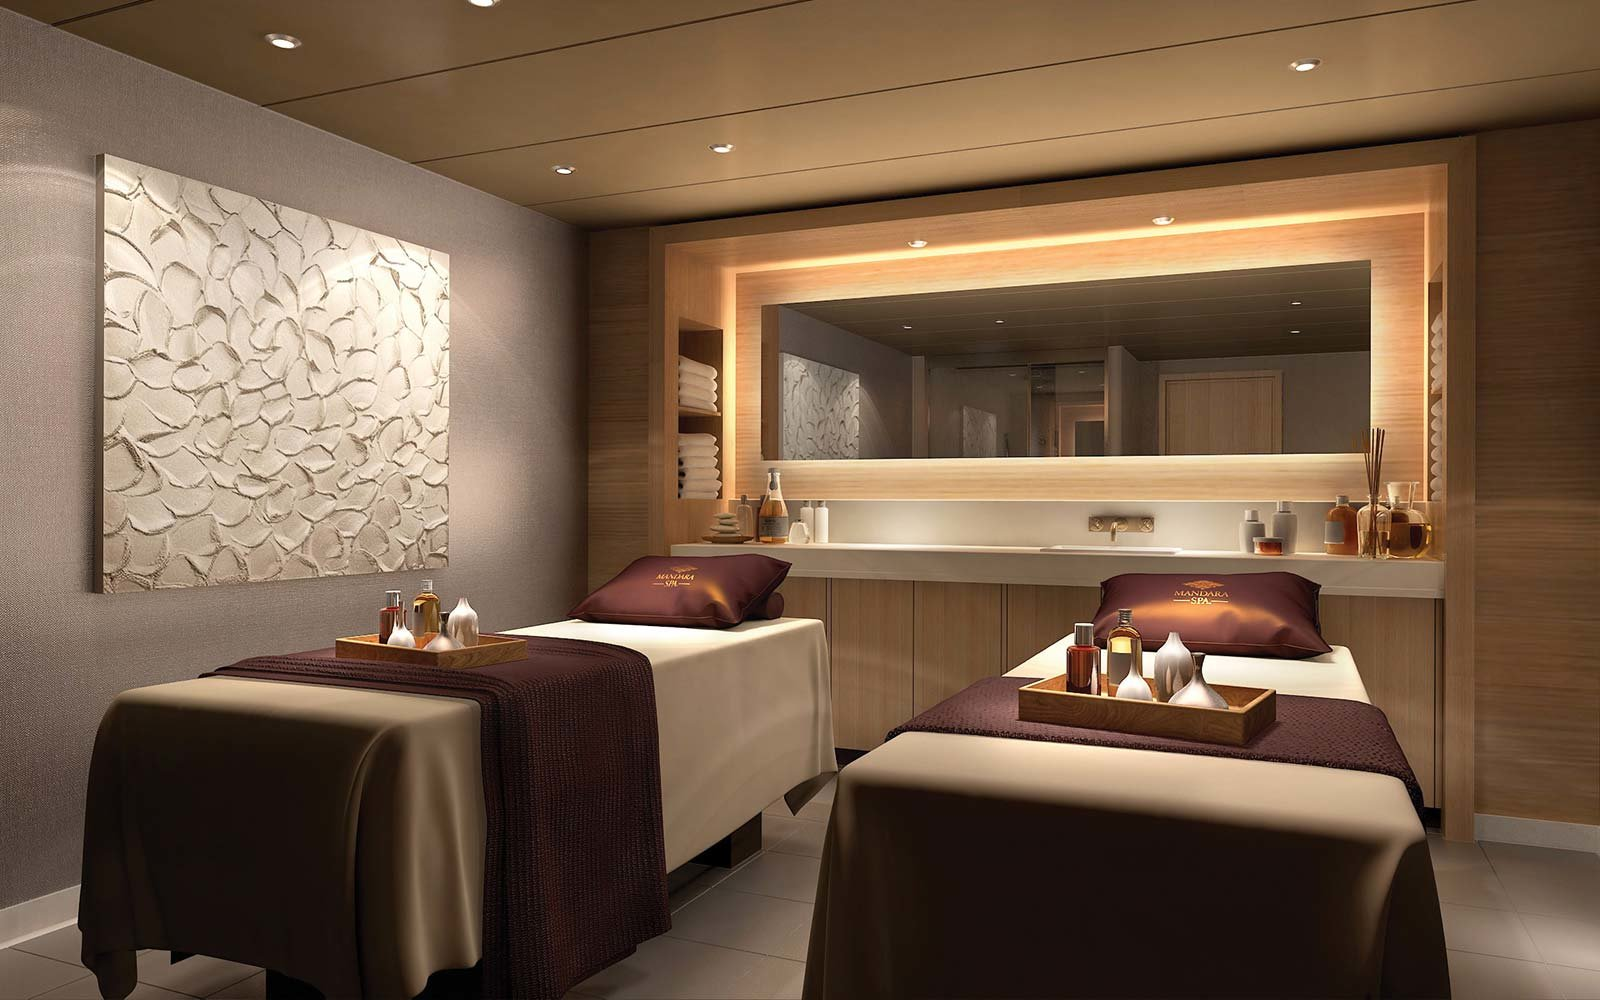 Norwegian Cruise Line Bliss Ship Spa Treatment